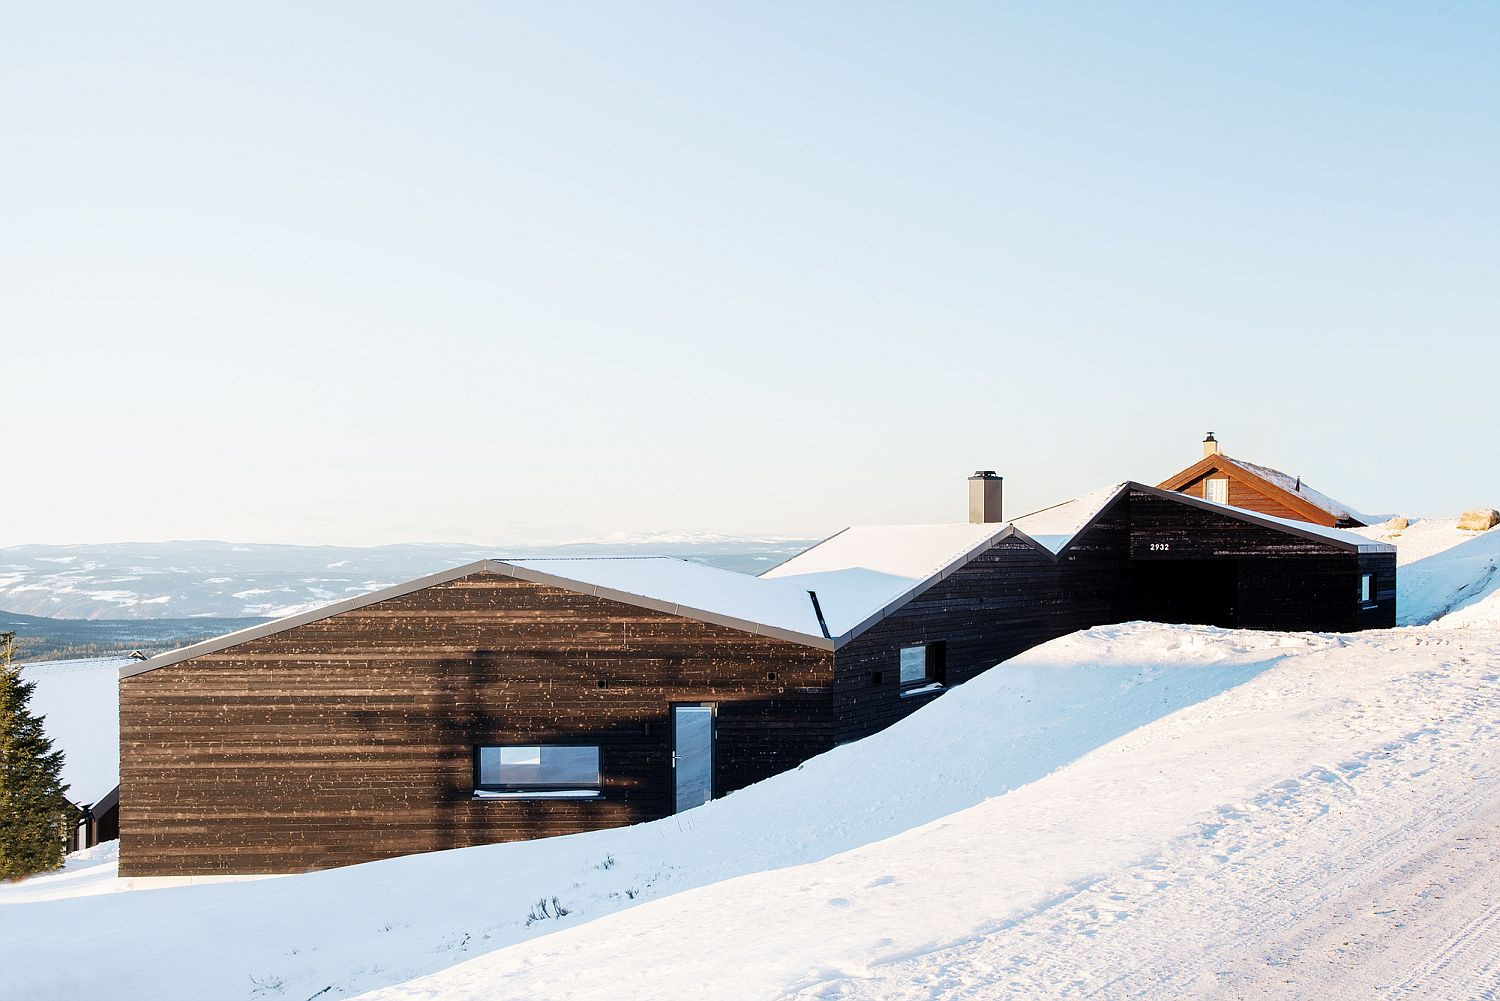 White roof and dark exterior of the cabin present a picture of contrast